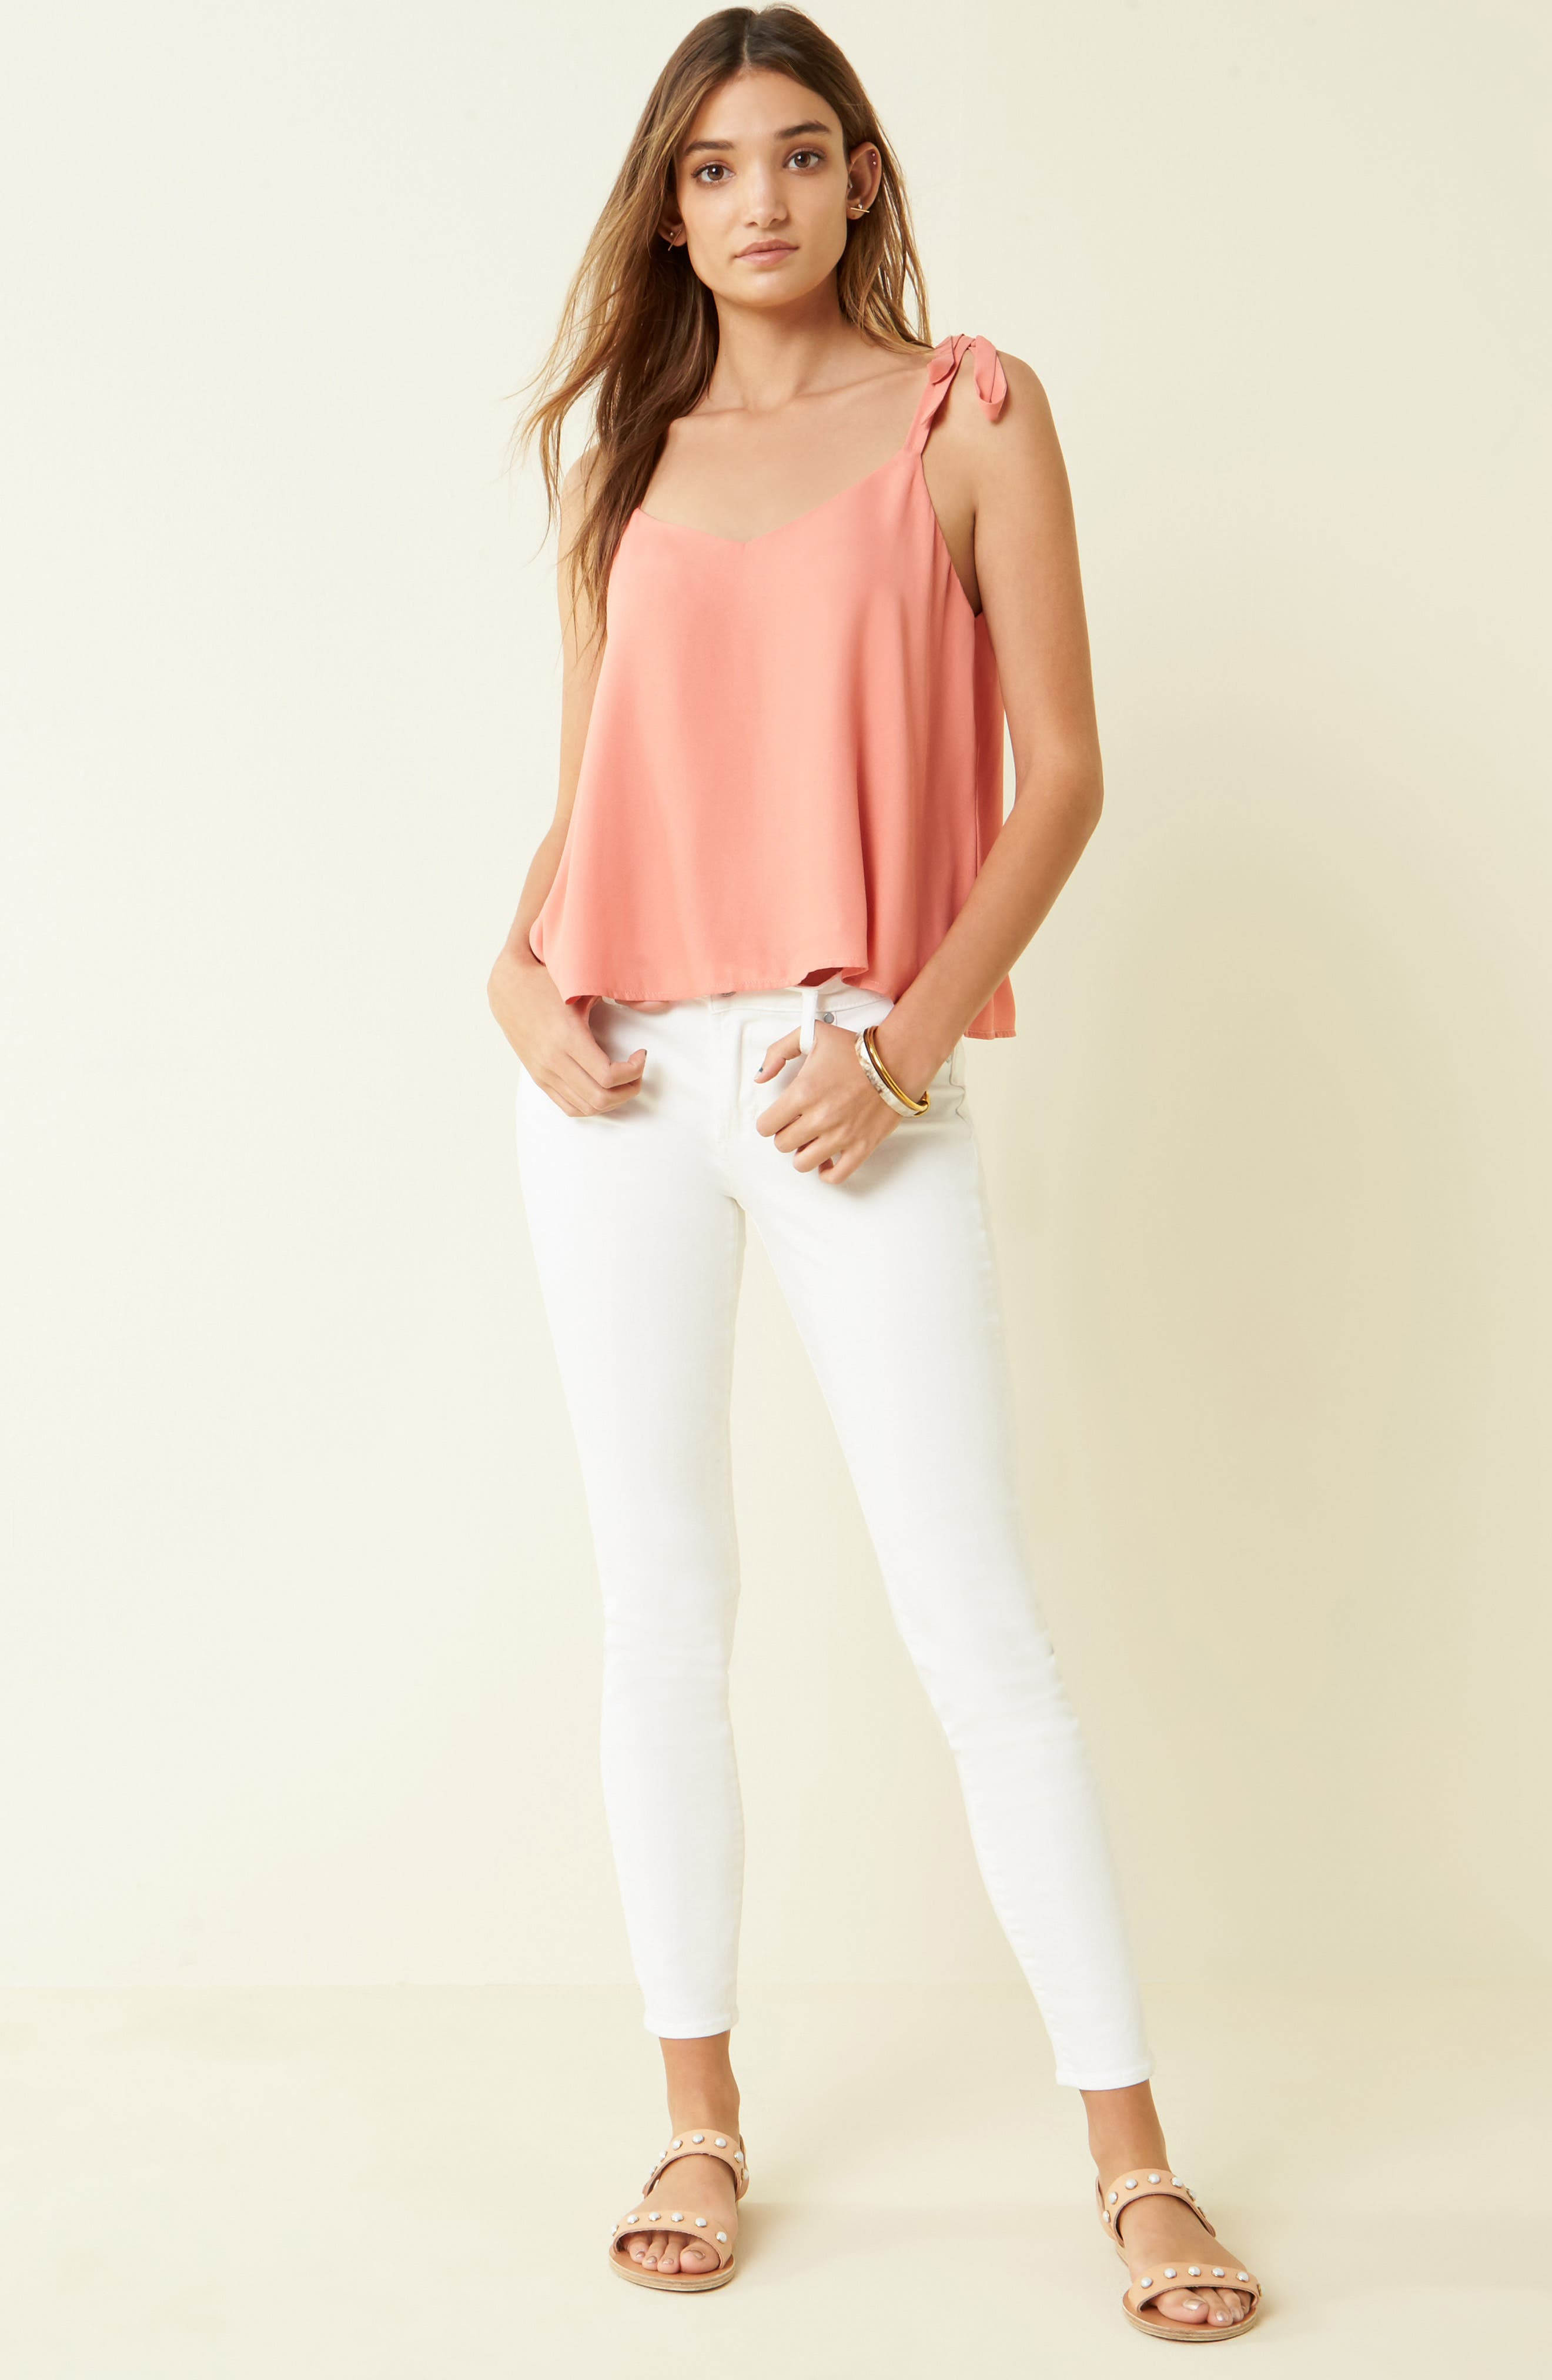 Lush Cami & Articles of Society Jeans Outfit with Accessories